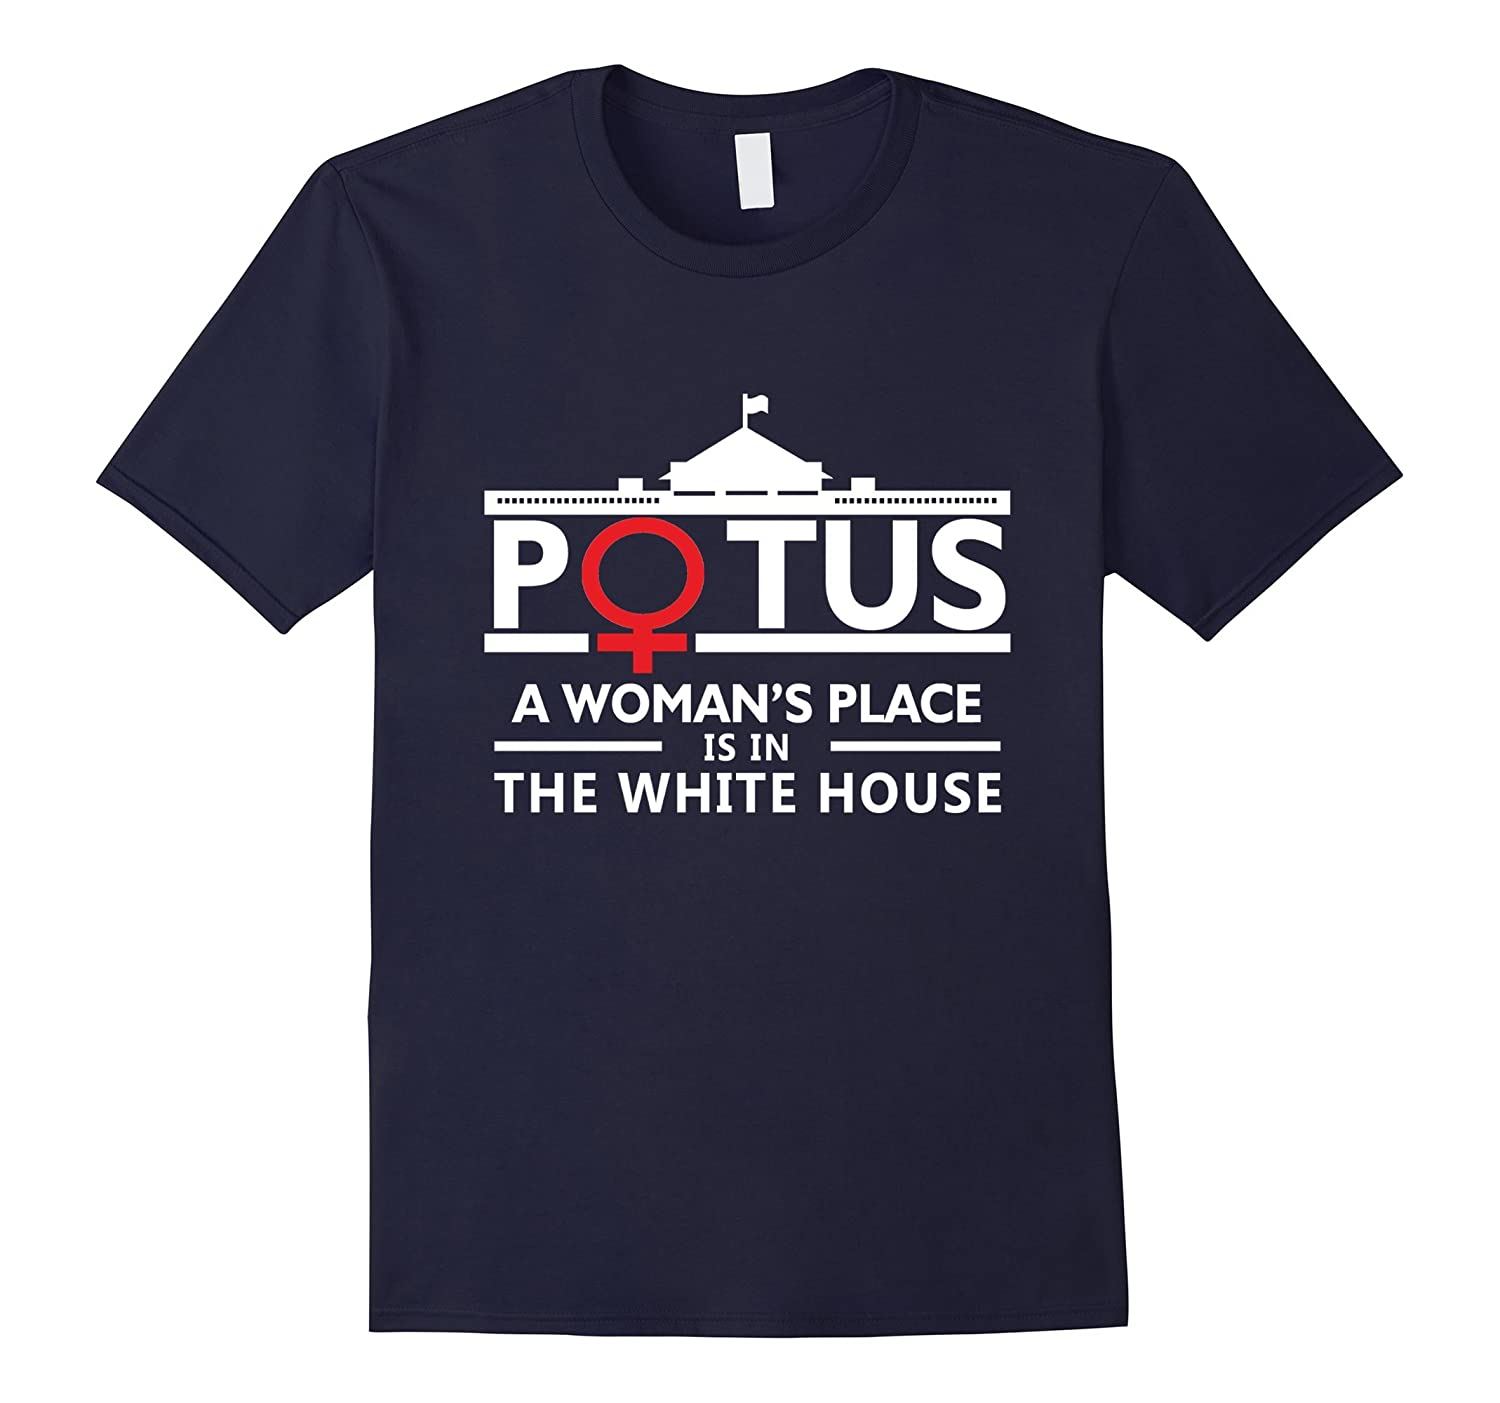 Men's Hillary A Woman's Place Is In The White House T Shirt-CL